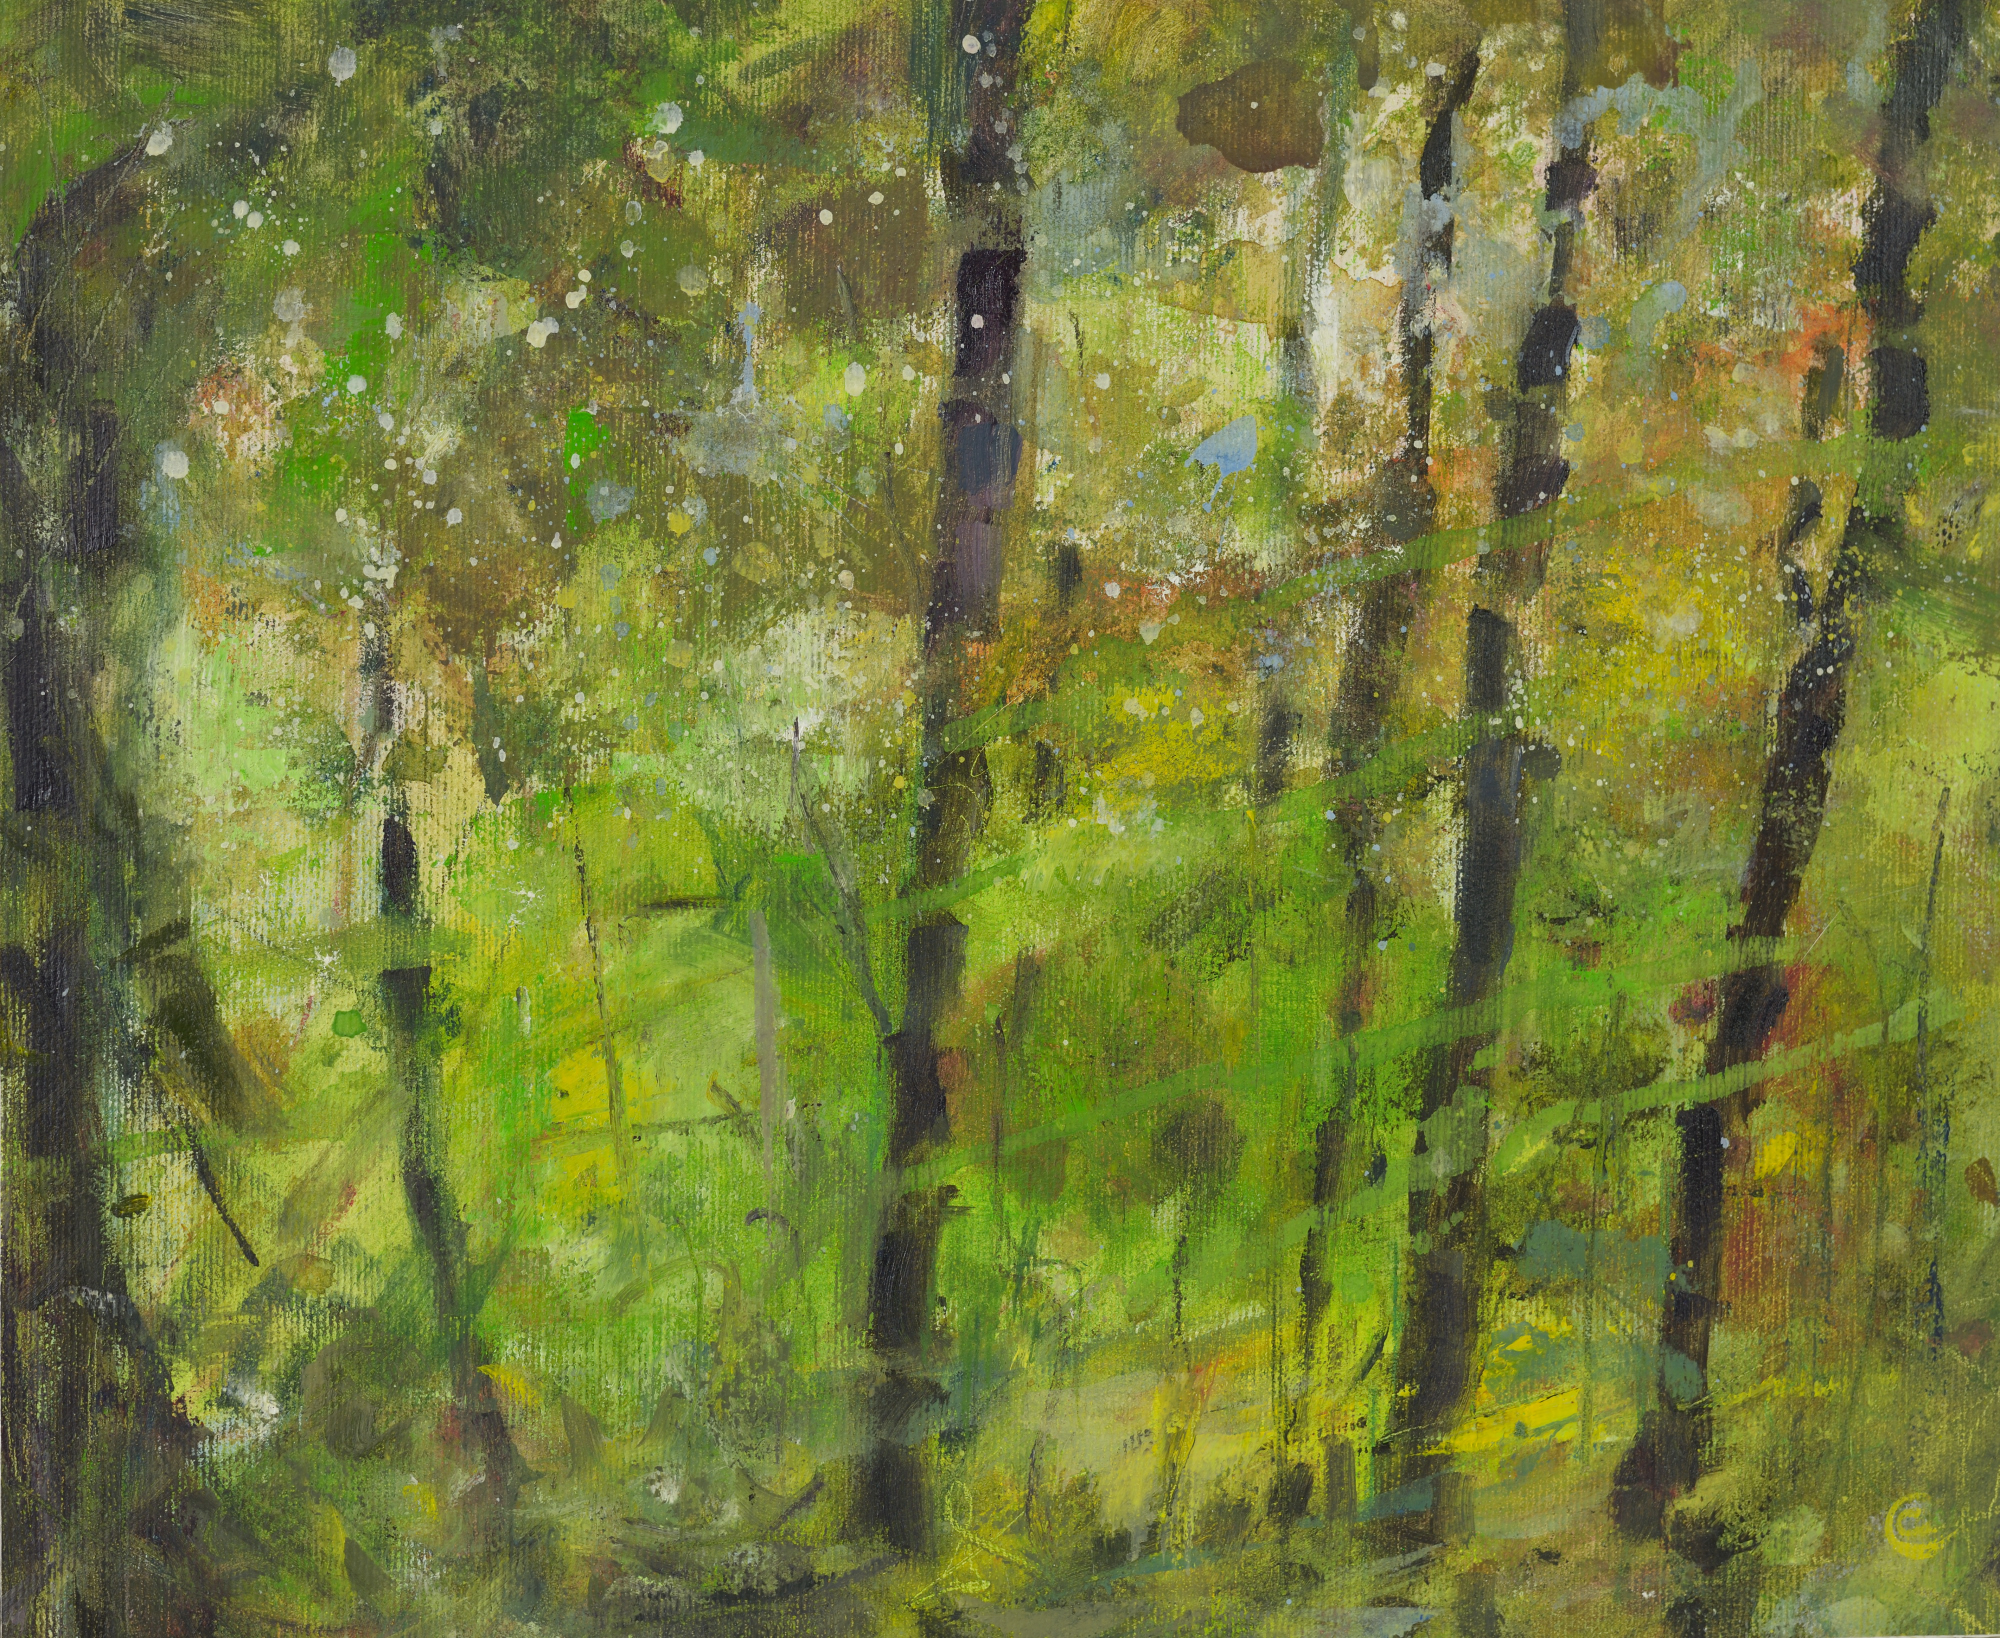 a photograph of an oil painting title 'Forest Trunks' by artist Catherine Coulson © 2014 Catherine Coulson